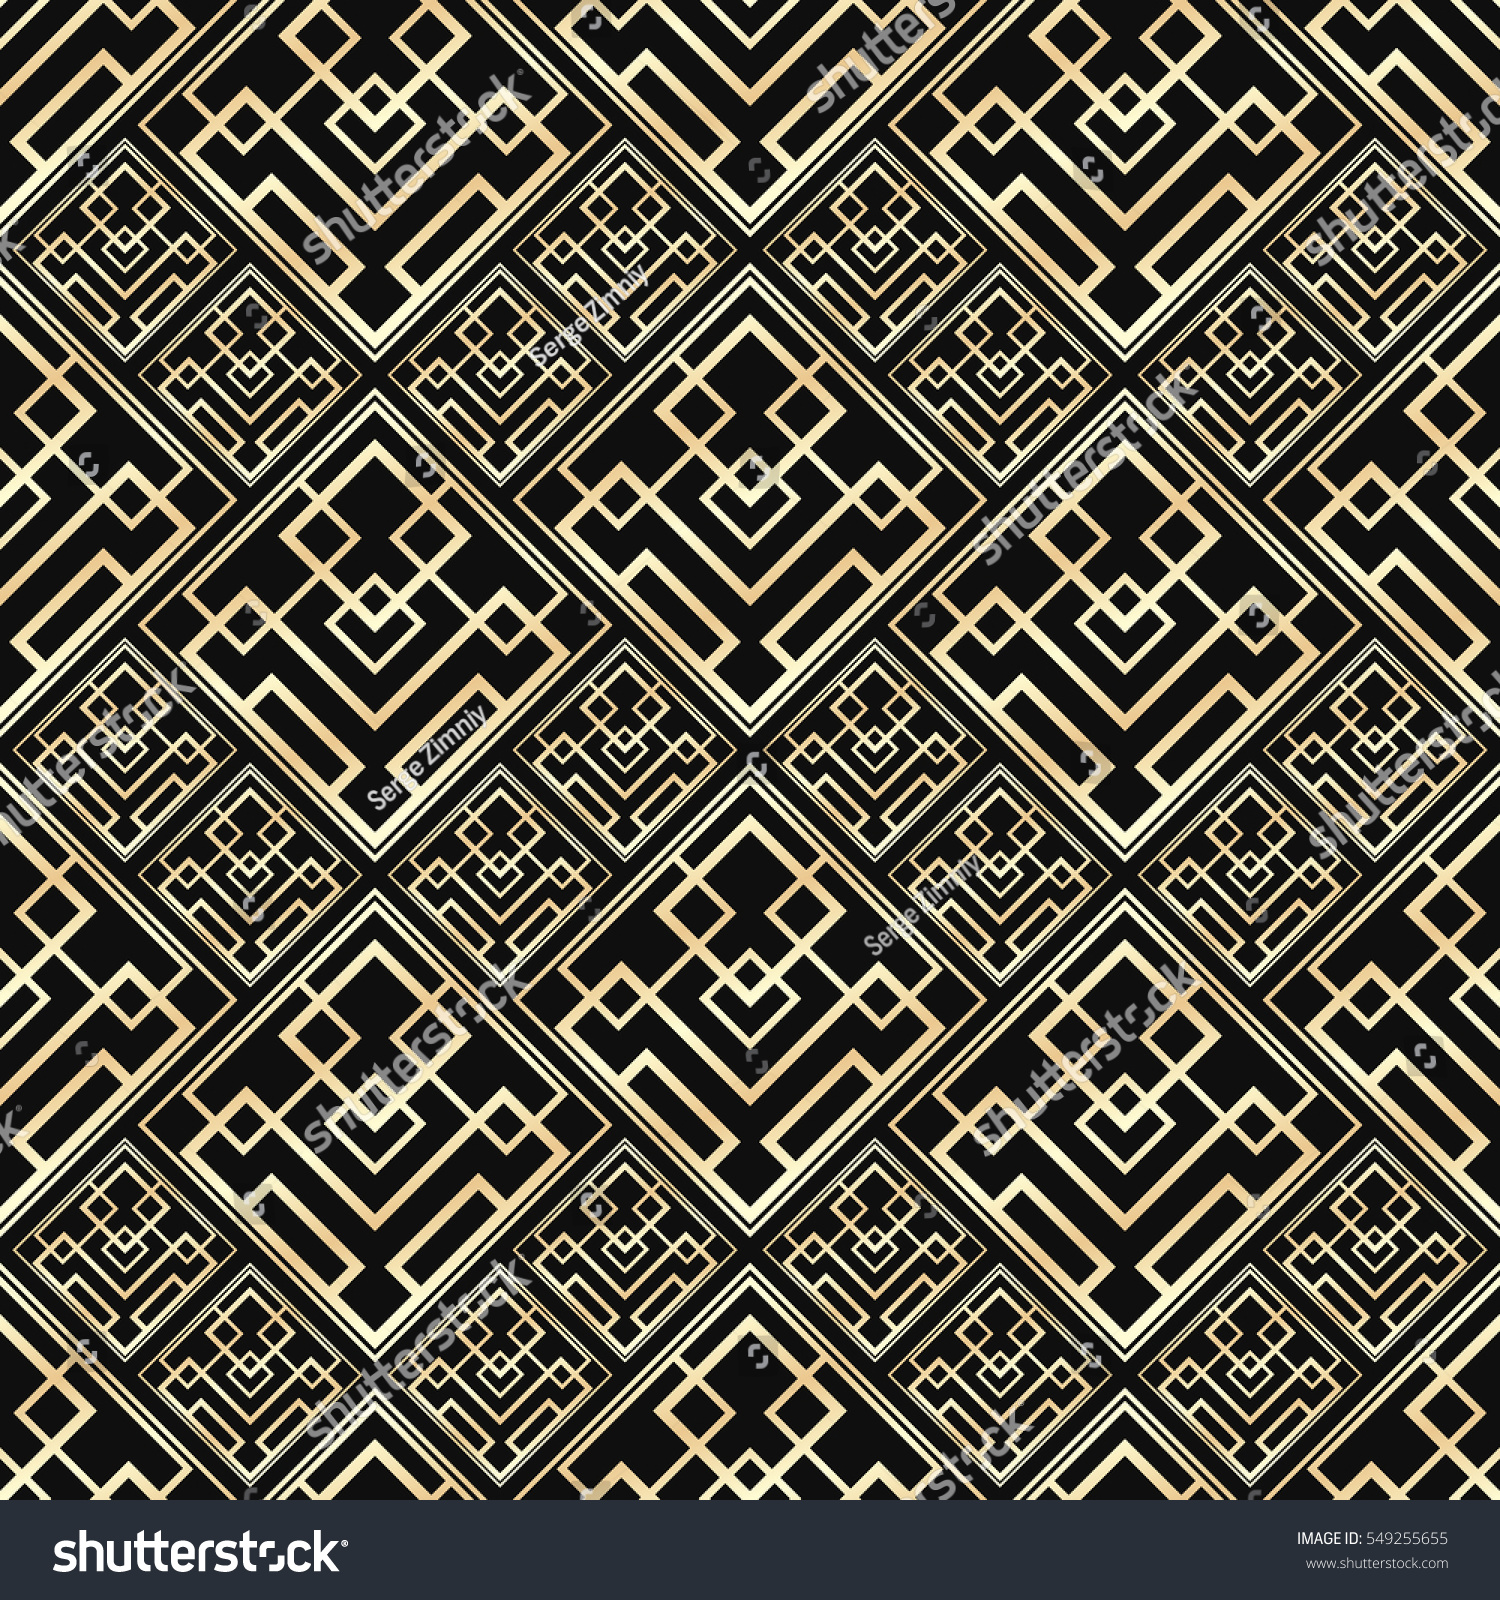 Seamless pattern art deco style black stock vector 549255655 seamless pattern in art deco style black and golden tilework 3d effect ceramic tiles dailygadgetfo Image collections